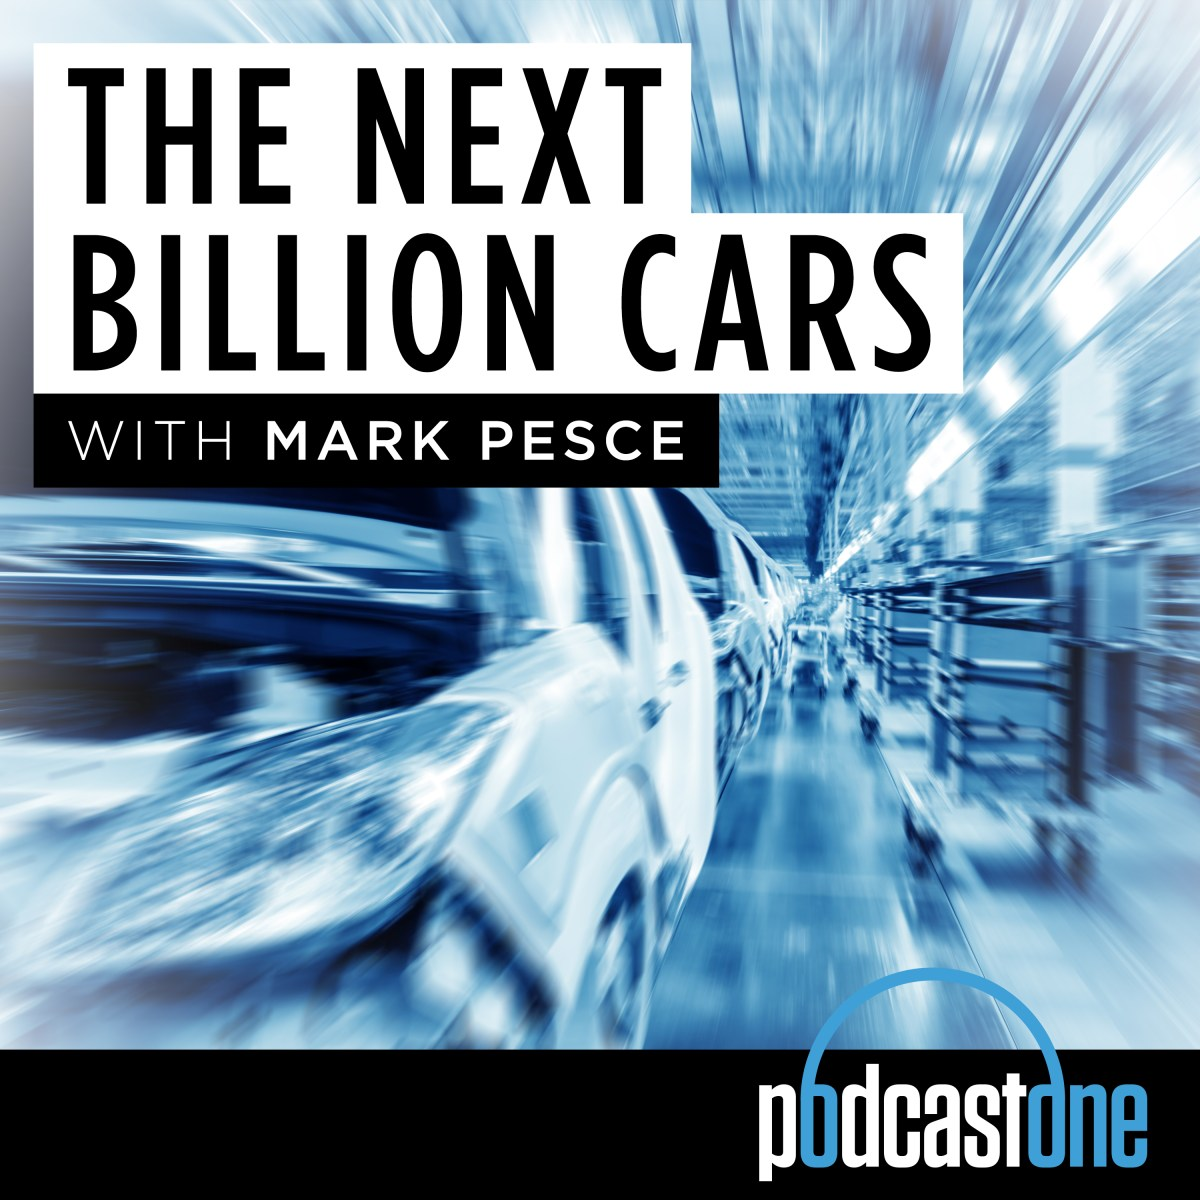 THE NEXT BILLION CARS Episode 5: The Next Billion RPM